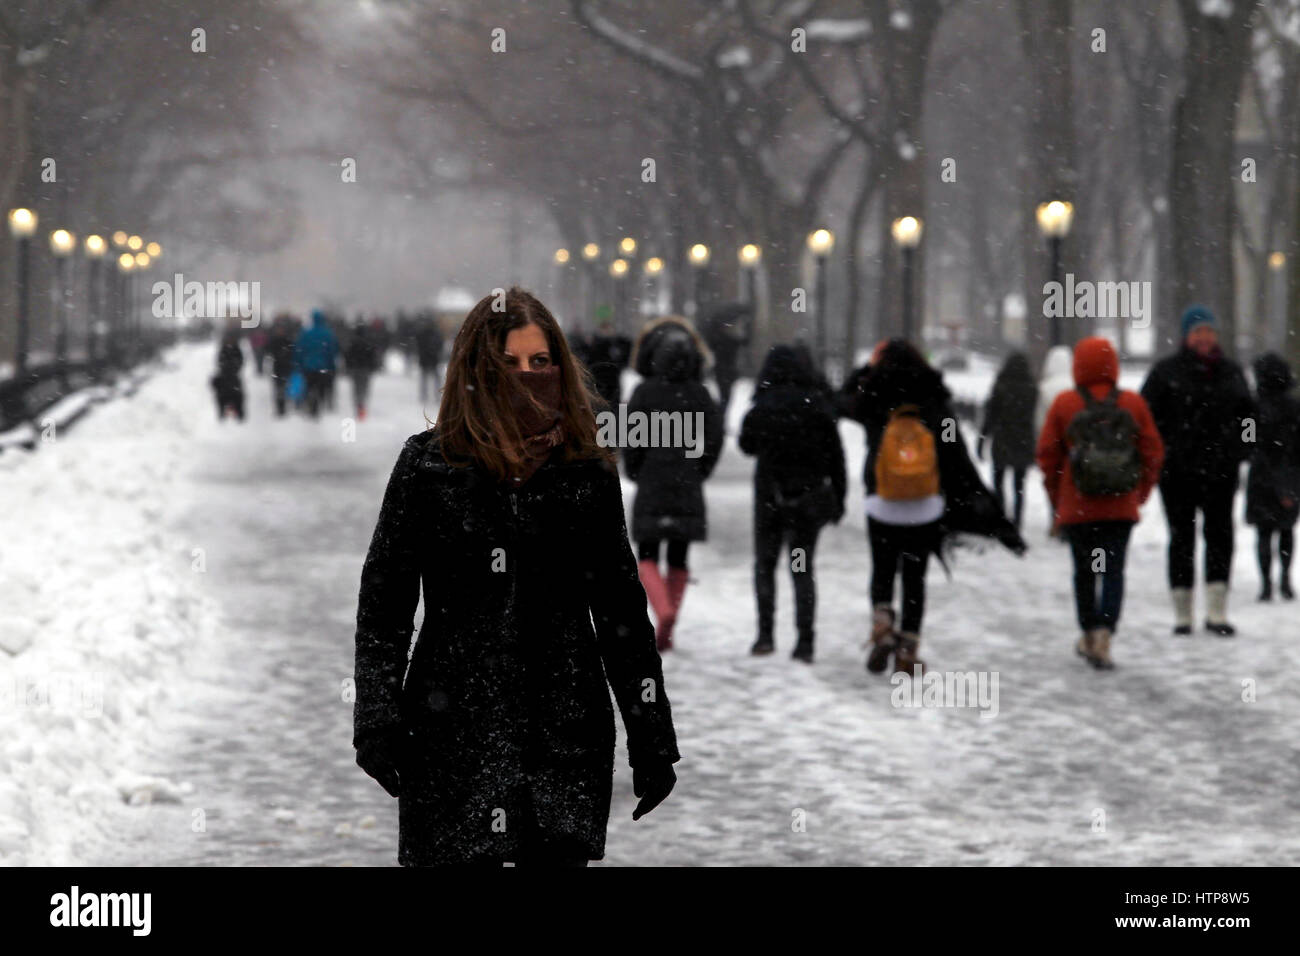 New York, United States. 14th Mar, 2017. People walk through New York City's Central Park during a snowstorm - Stock Image